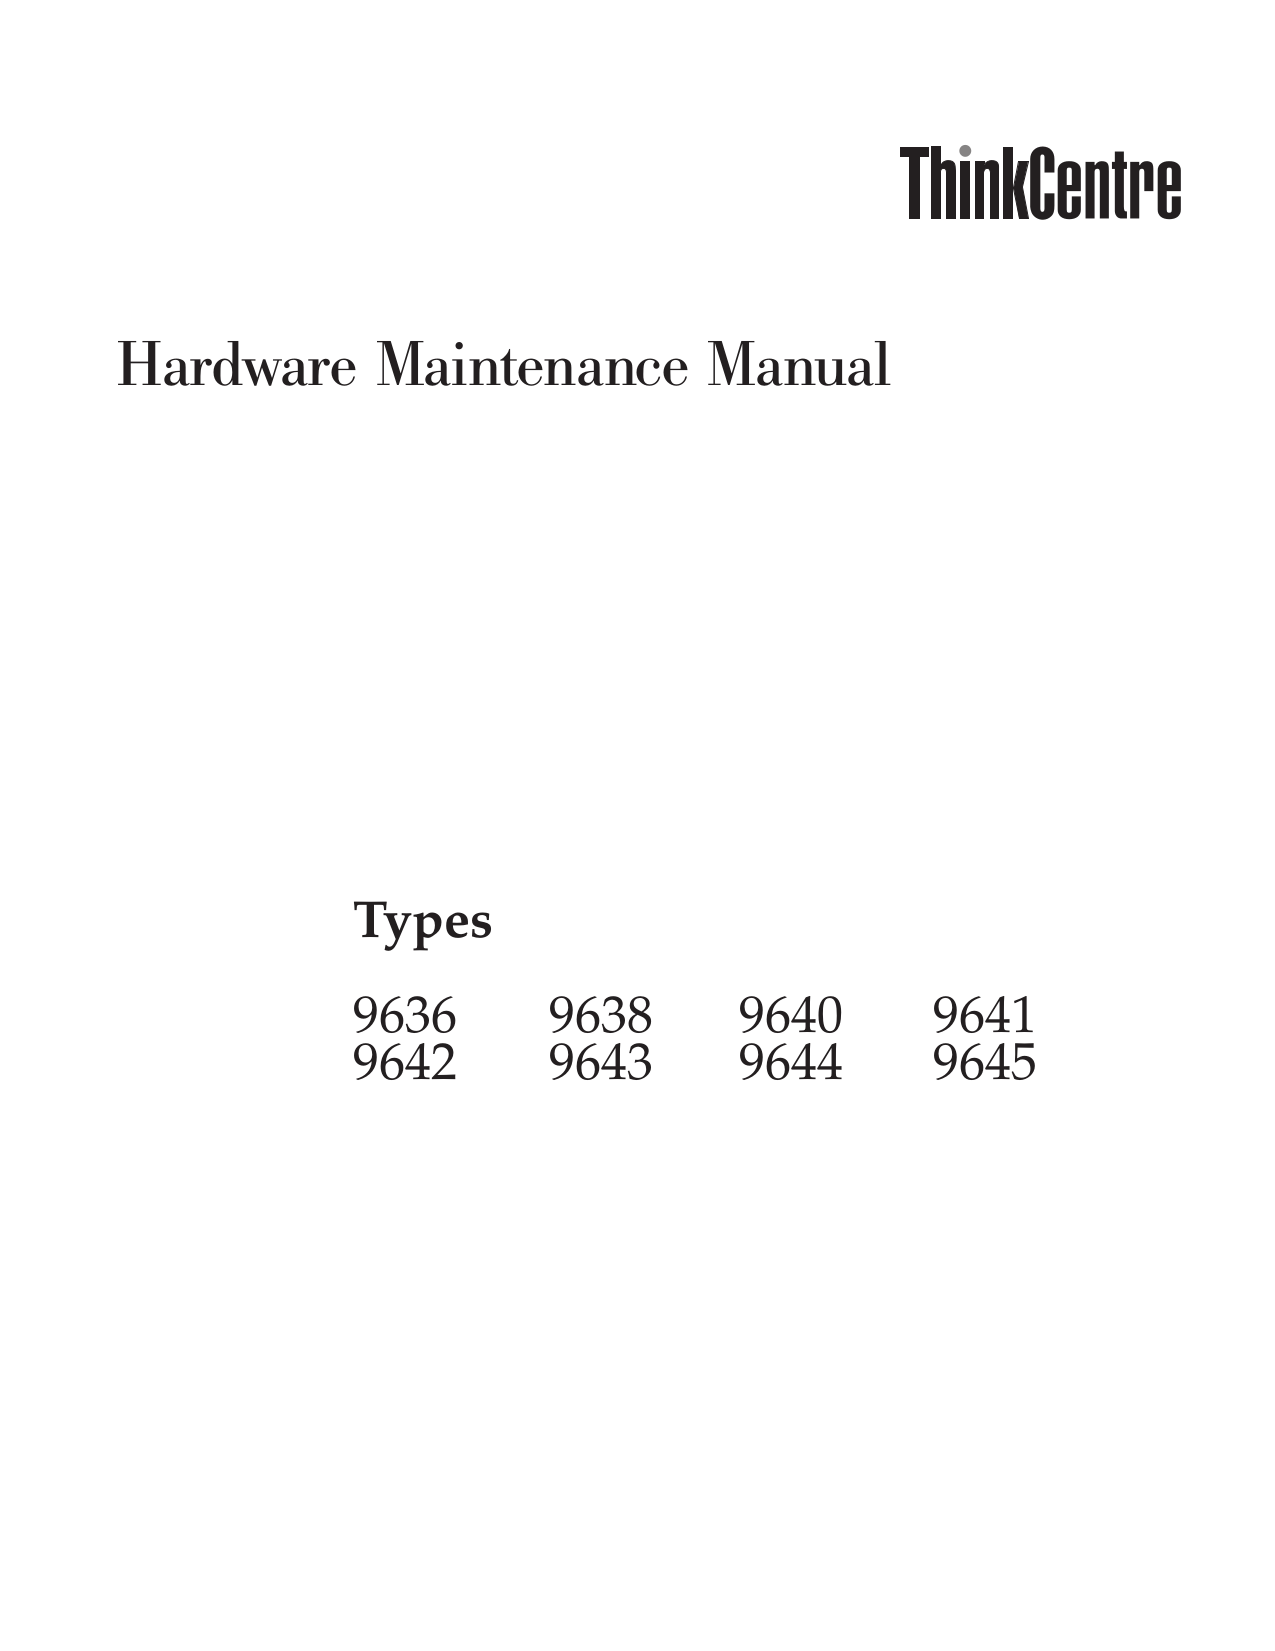 pdf for Lenovo Desktop ThinkCentre M55e 9301 manual